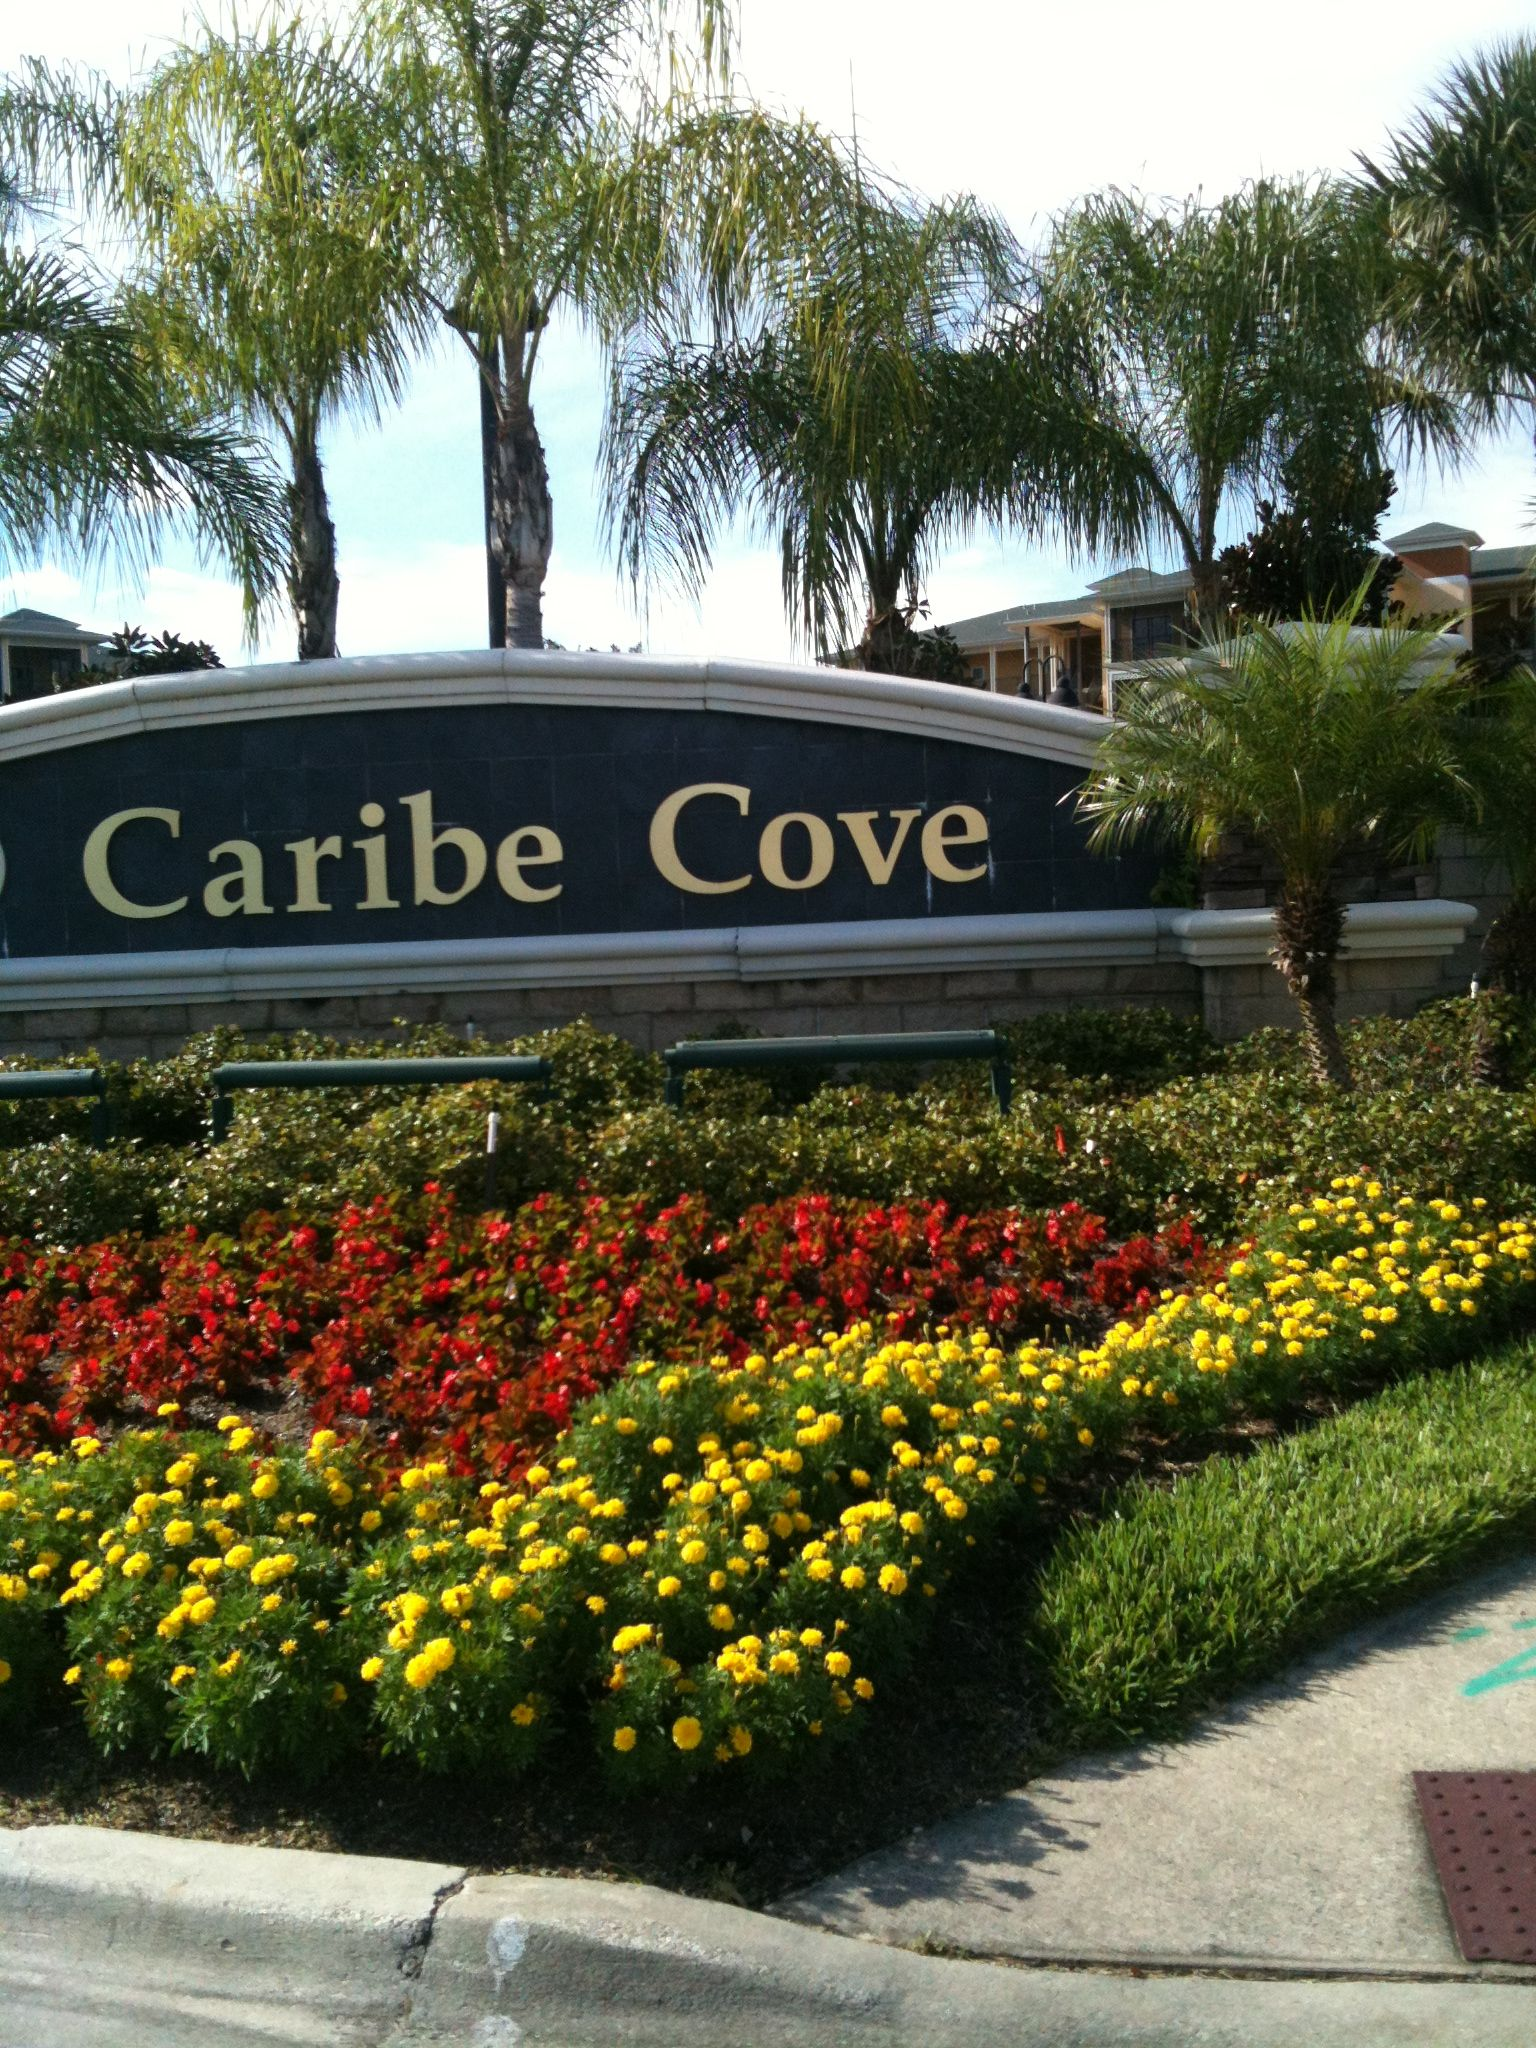 Caribe Cove  Florida  Landscape Orlando resorts Florida